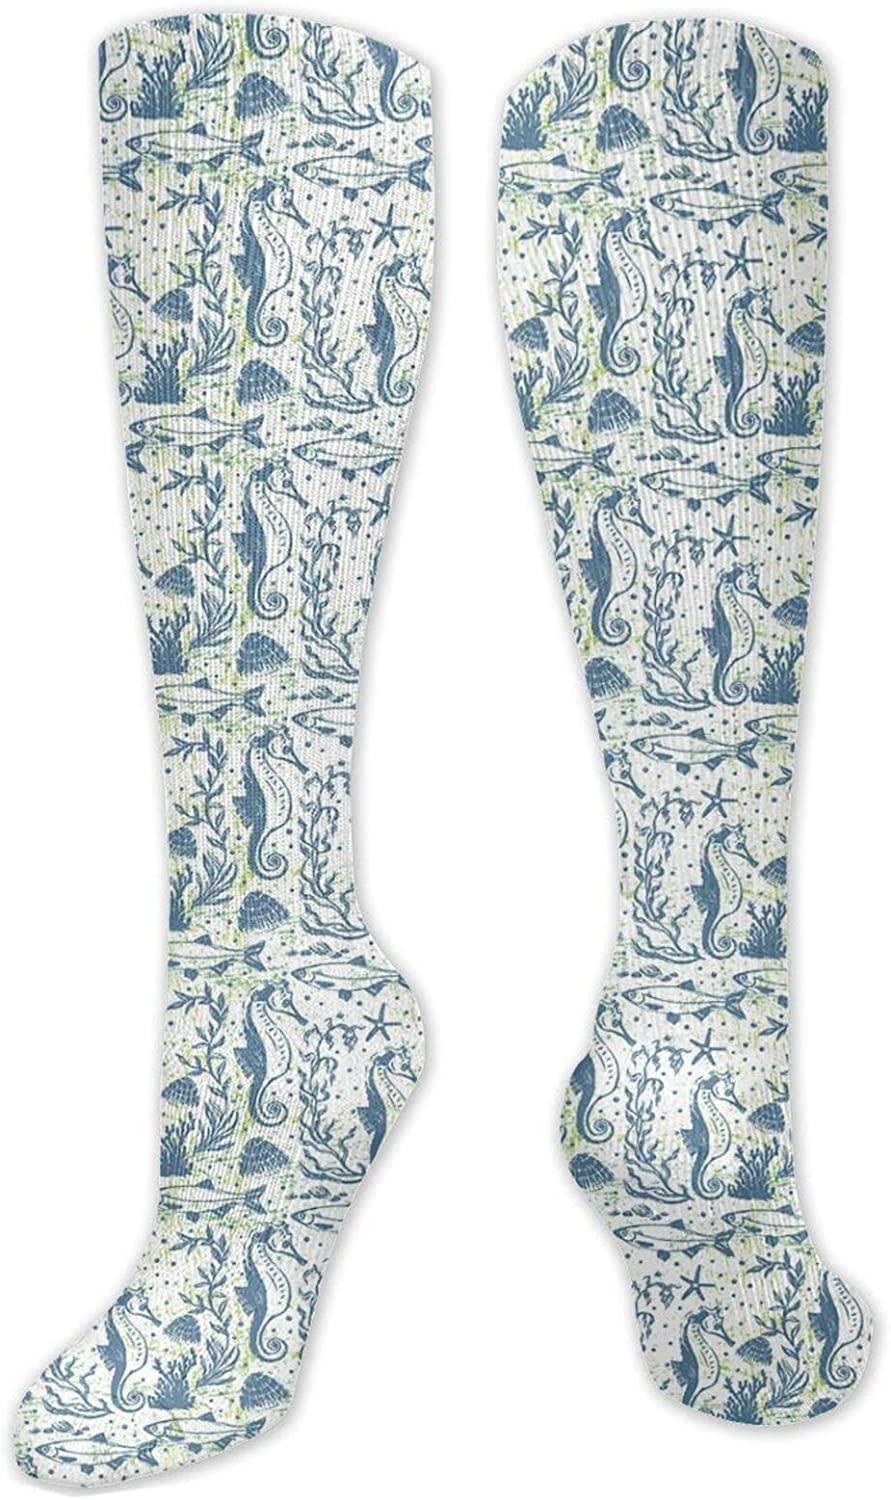 Compression OFFicial site Socks for Women Topics on TV Men Style Illus Circulation Sketch